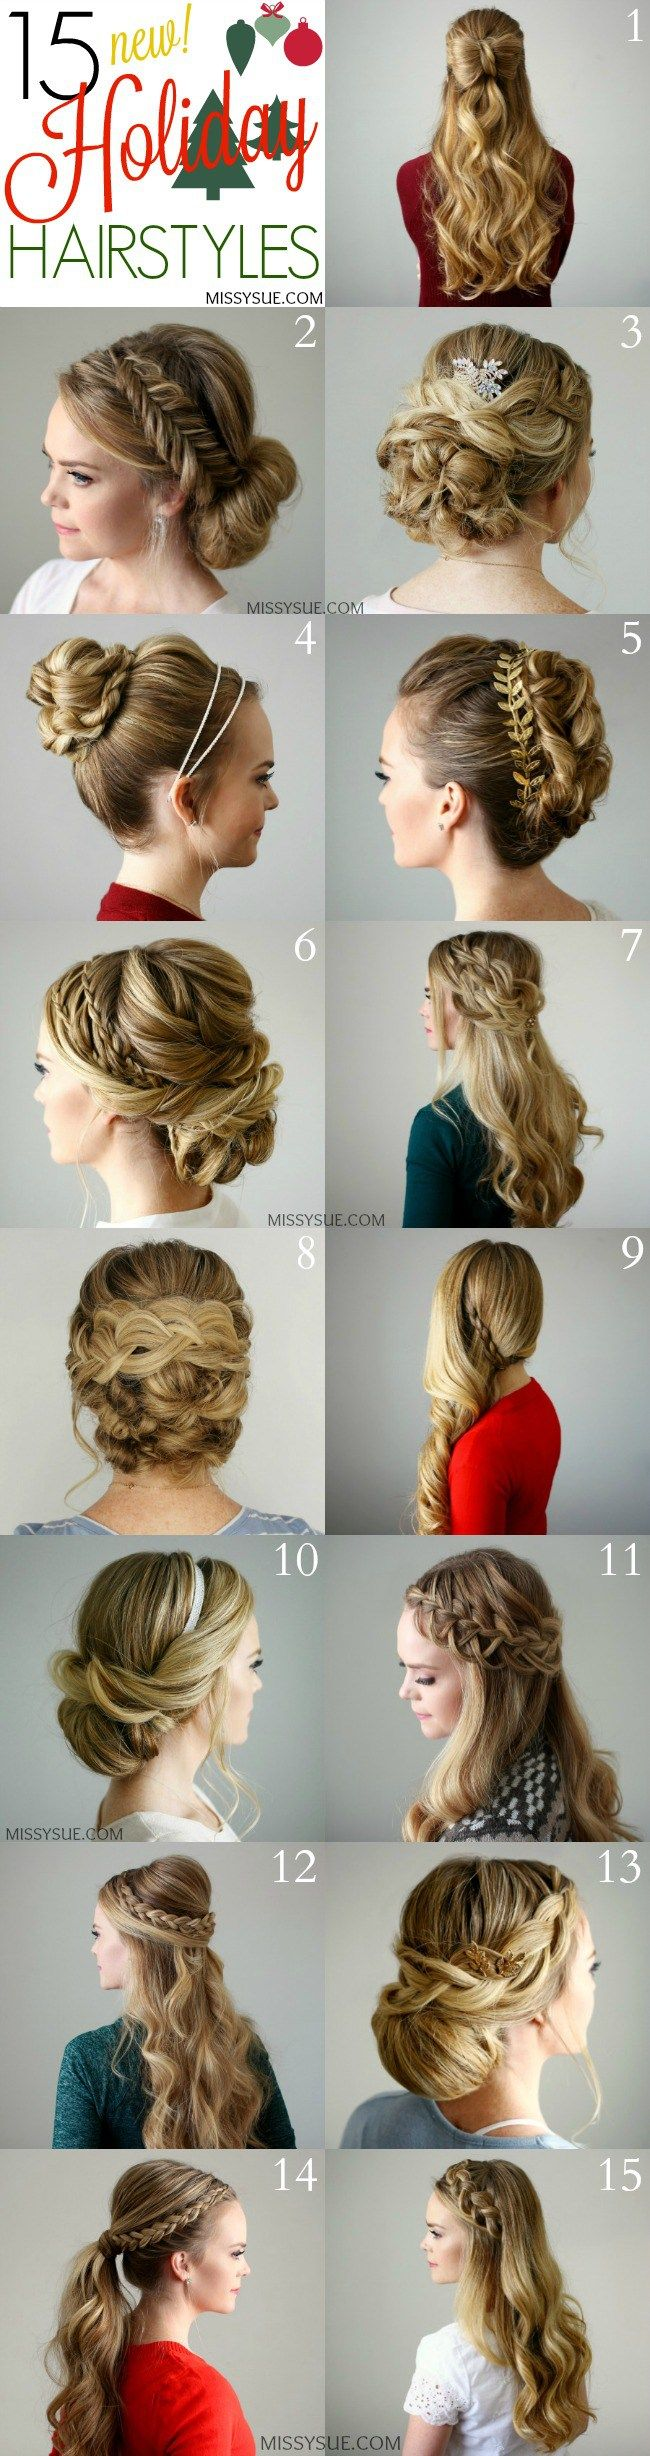 15 Holiday Hairstyles | MissySue.com